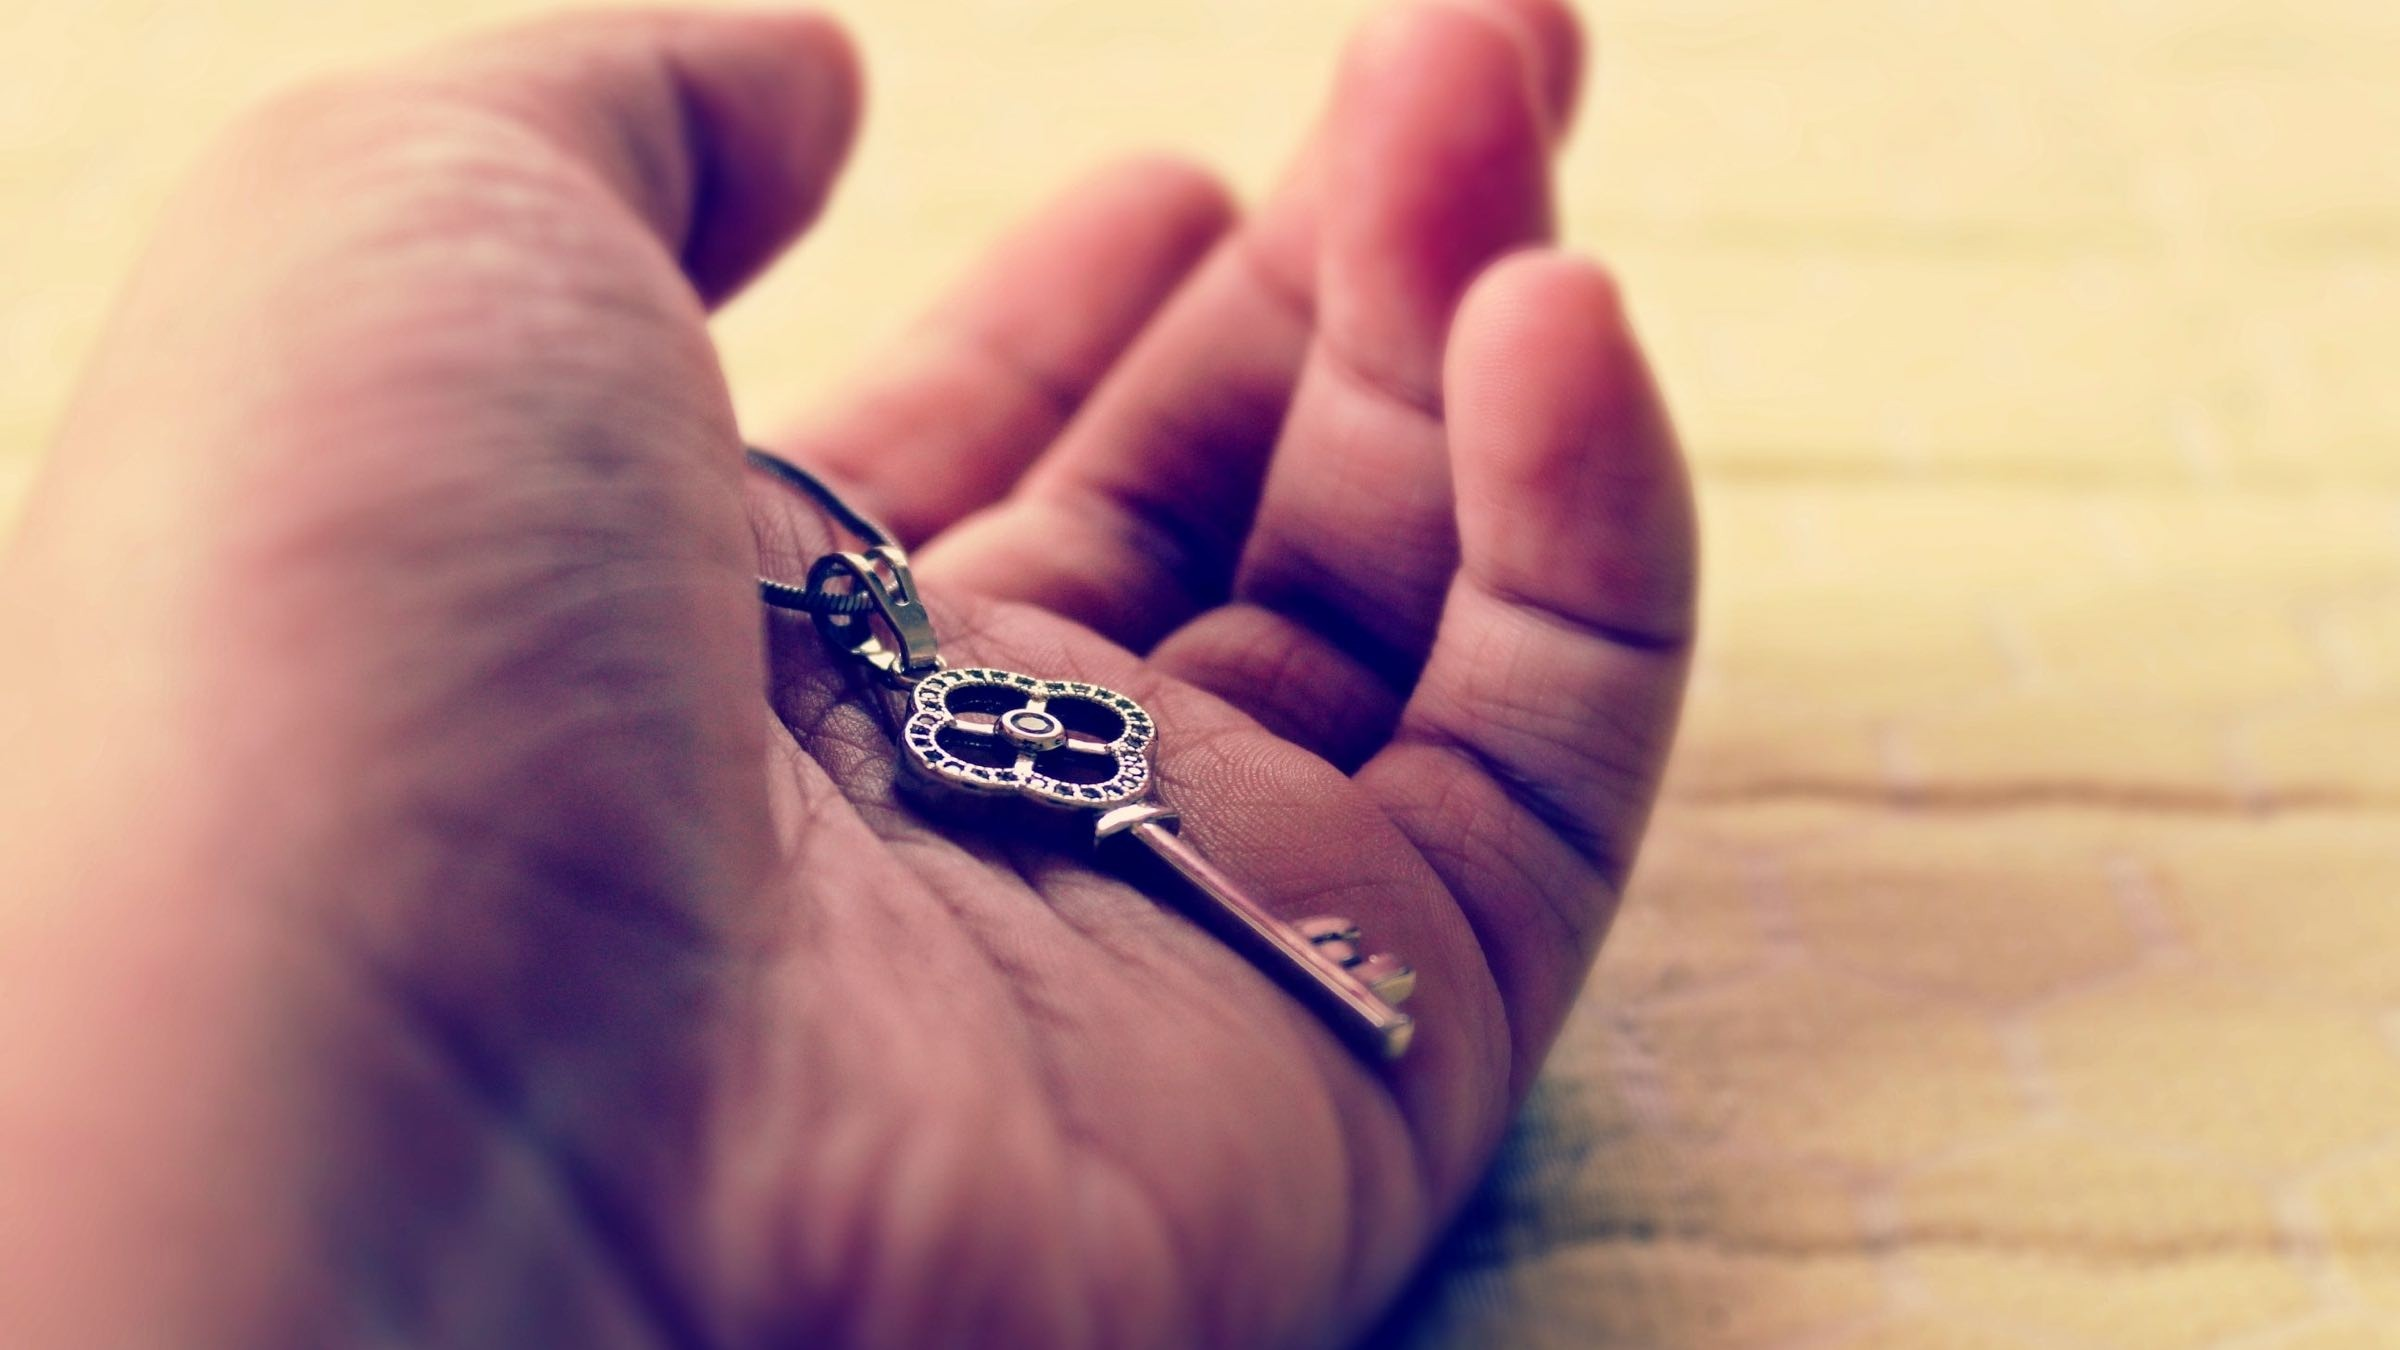 Uncovering the Lost Keys to Unconditional Kindness